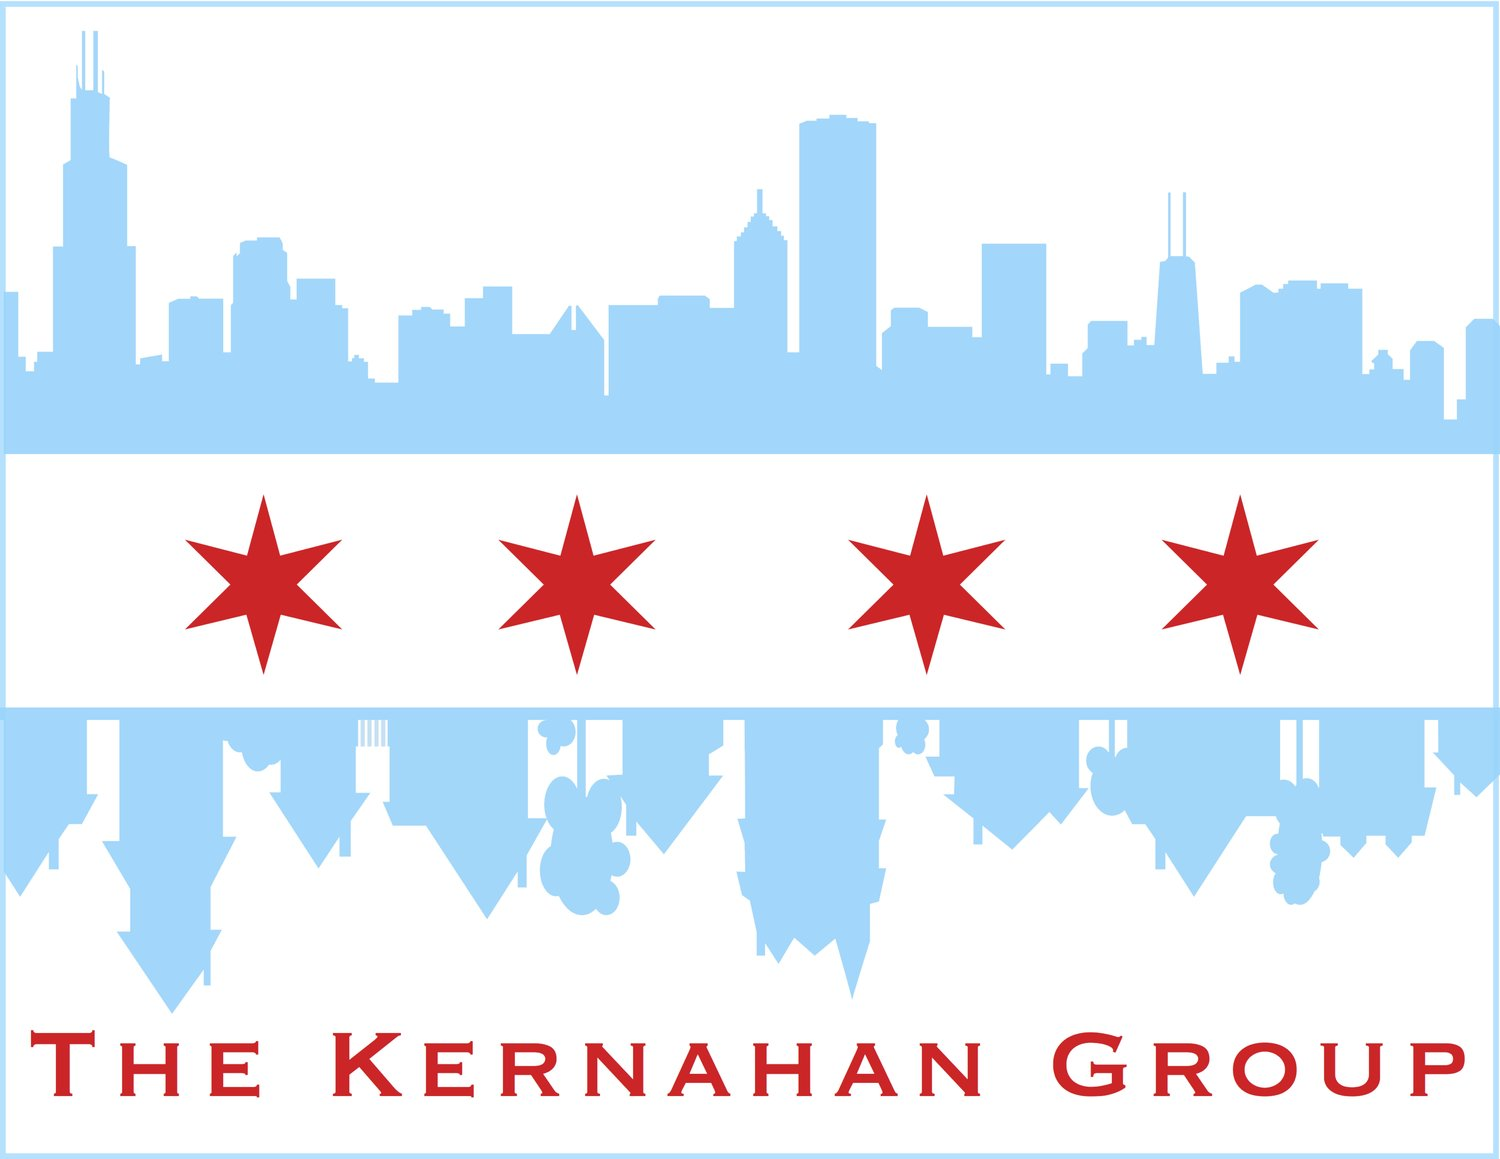 The Kernahan Group